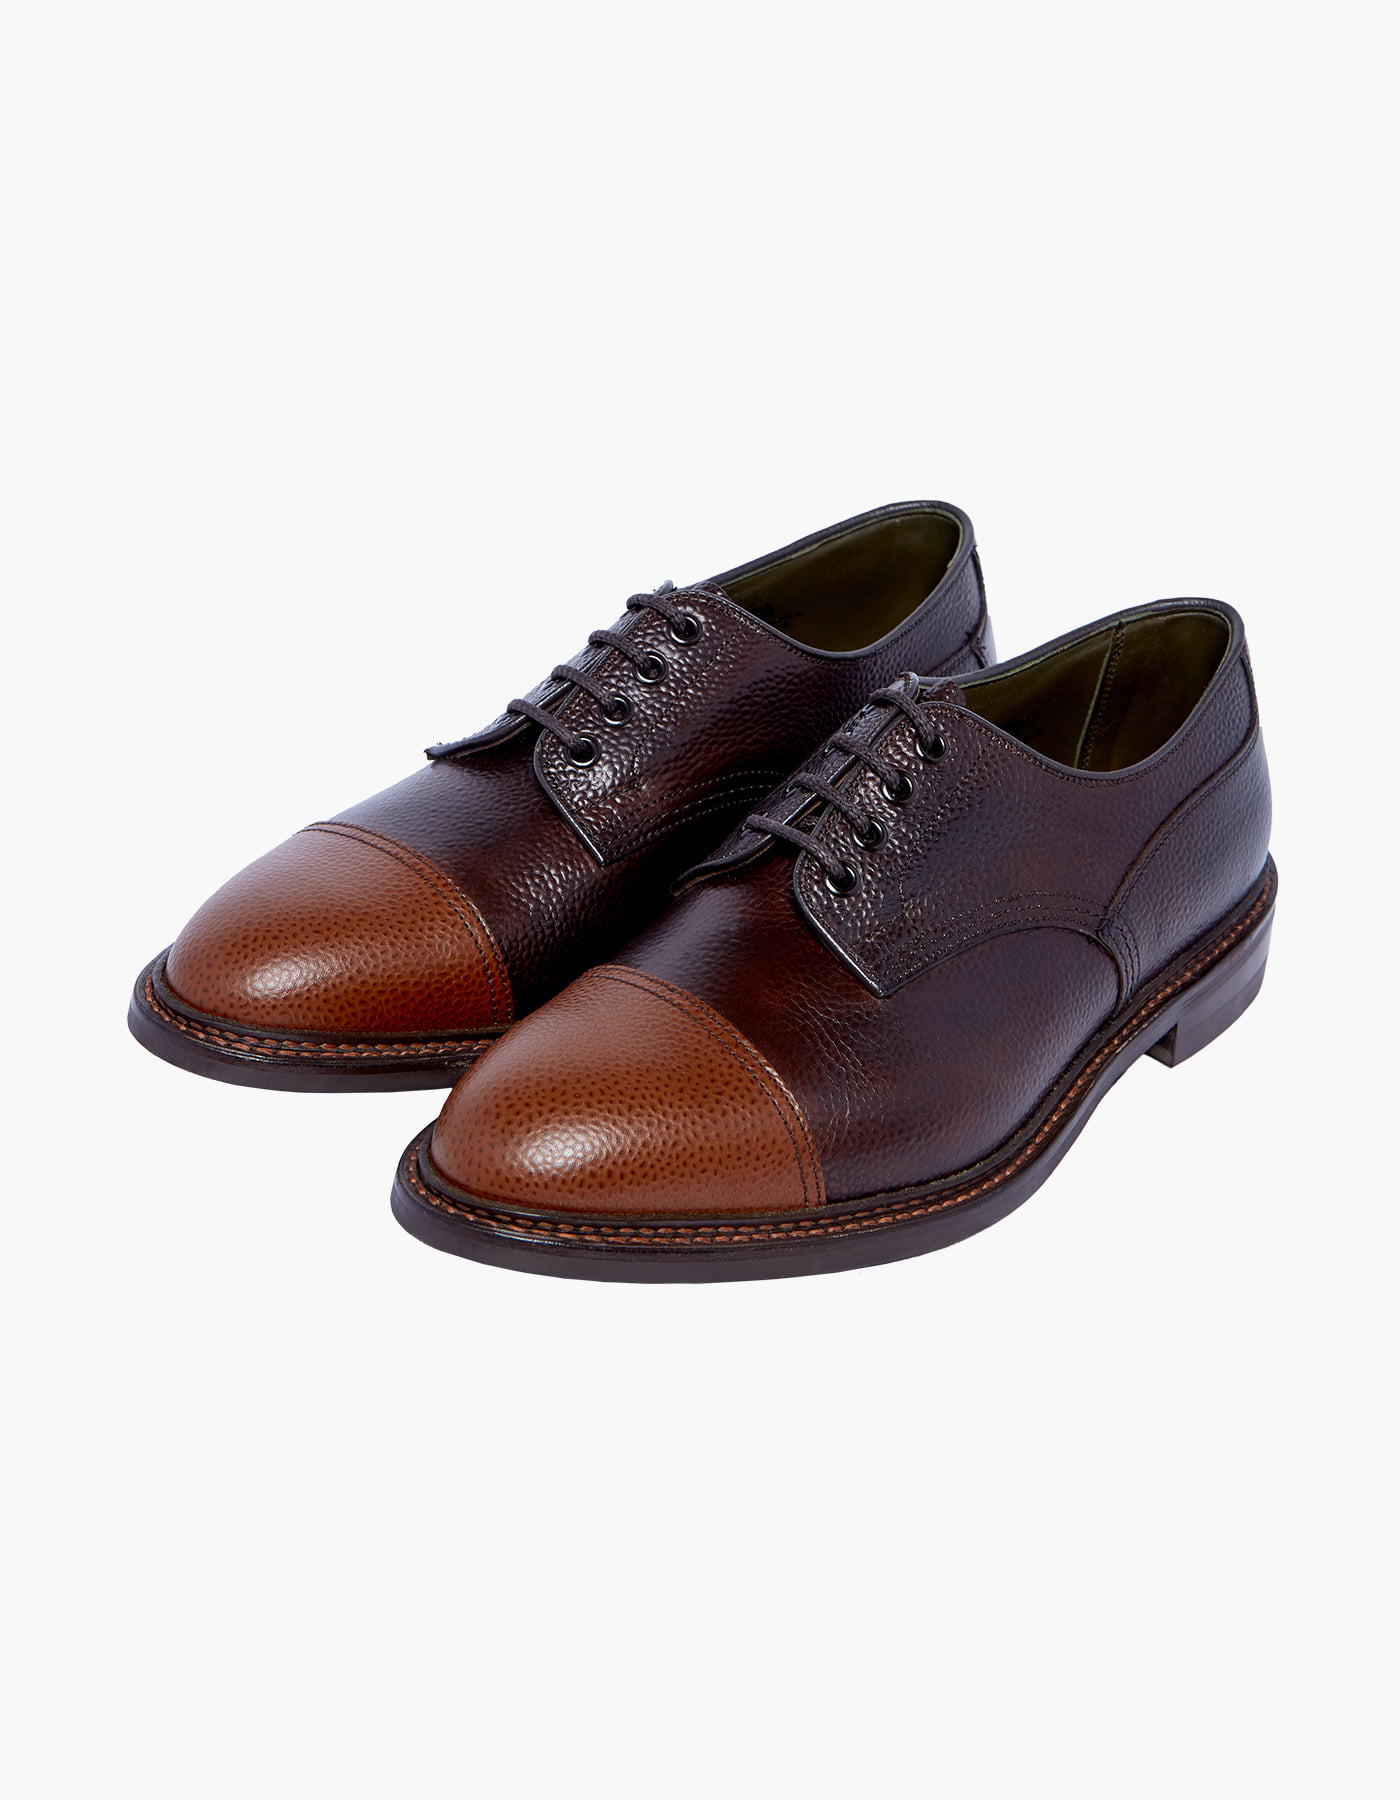 TRICKER'S X HERITAGEFLOSS CHADWICK (M) / BROWN